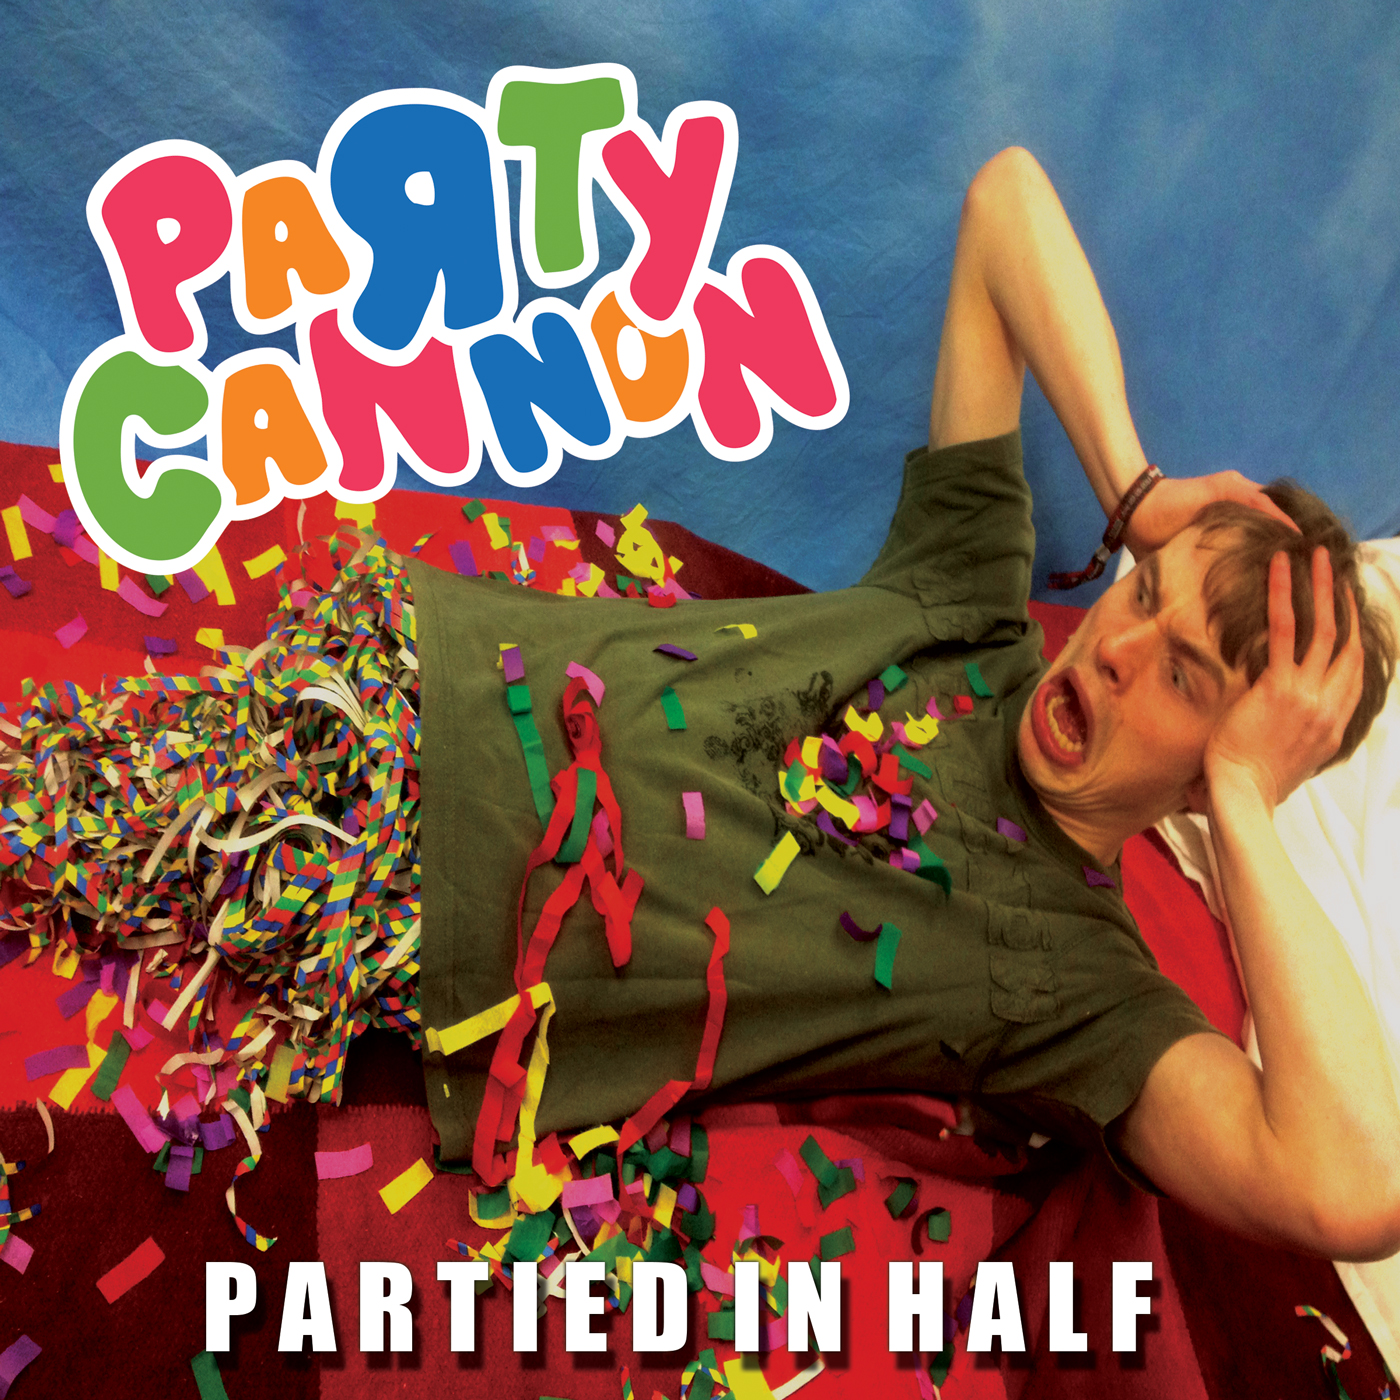 2902166_146372244683_GHP022-Party-Cannon-Partied-In-Half.jpg